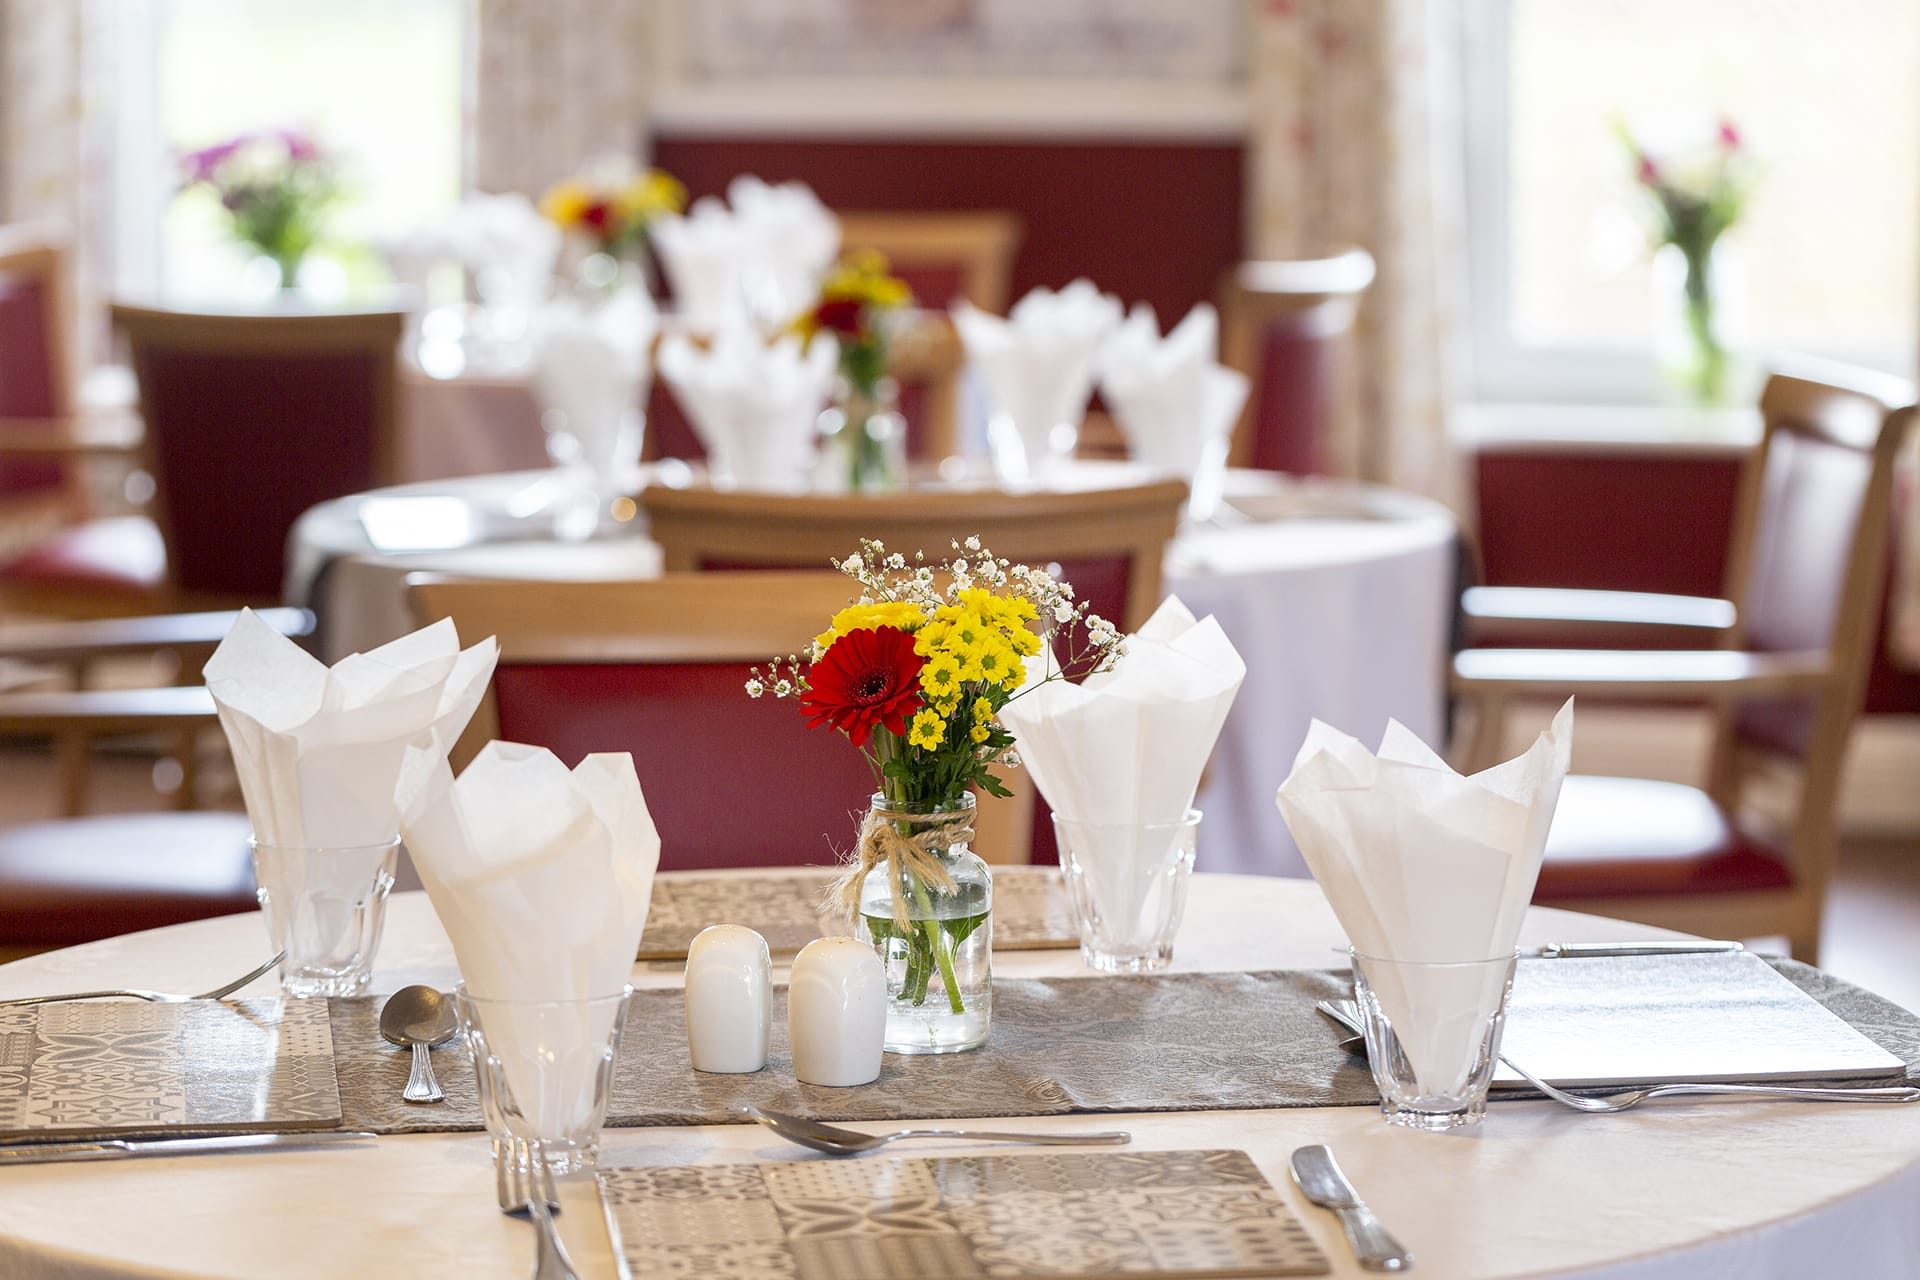 Stambridge Meadows Care Home dining table